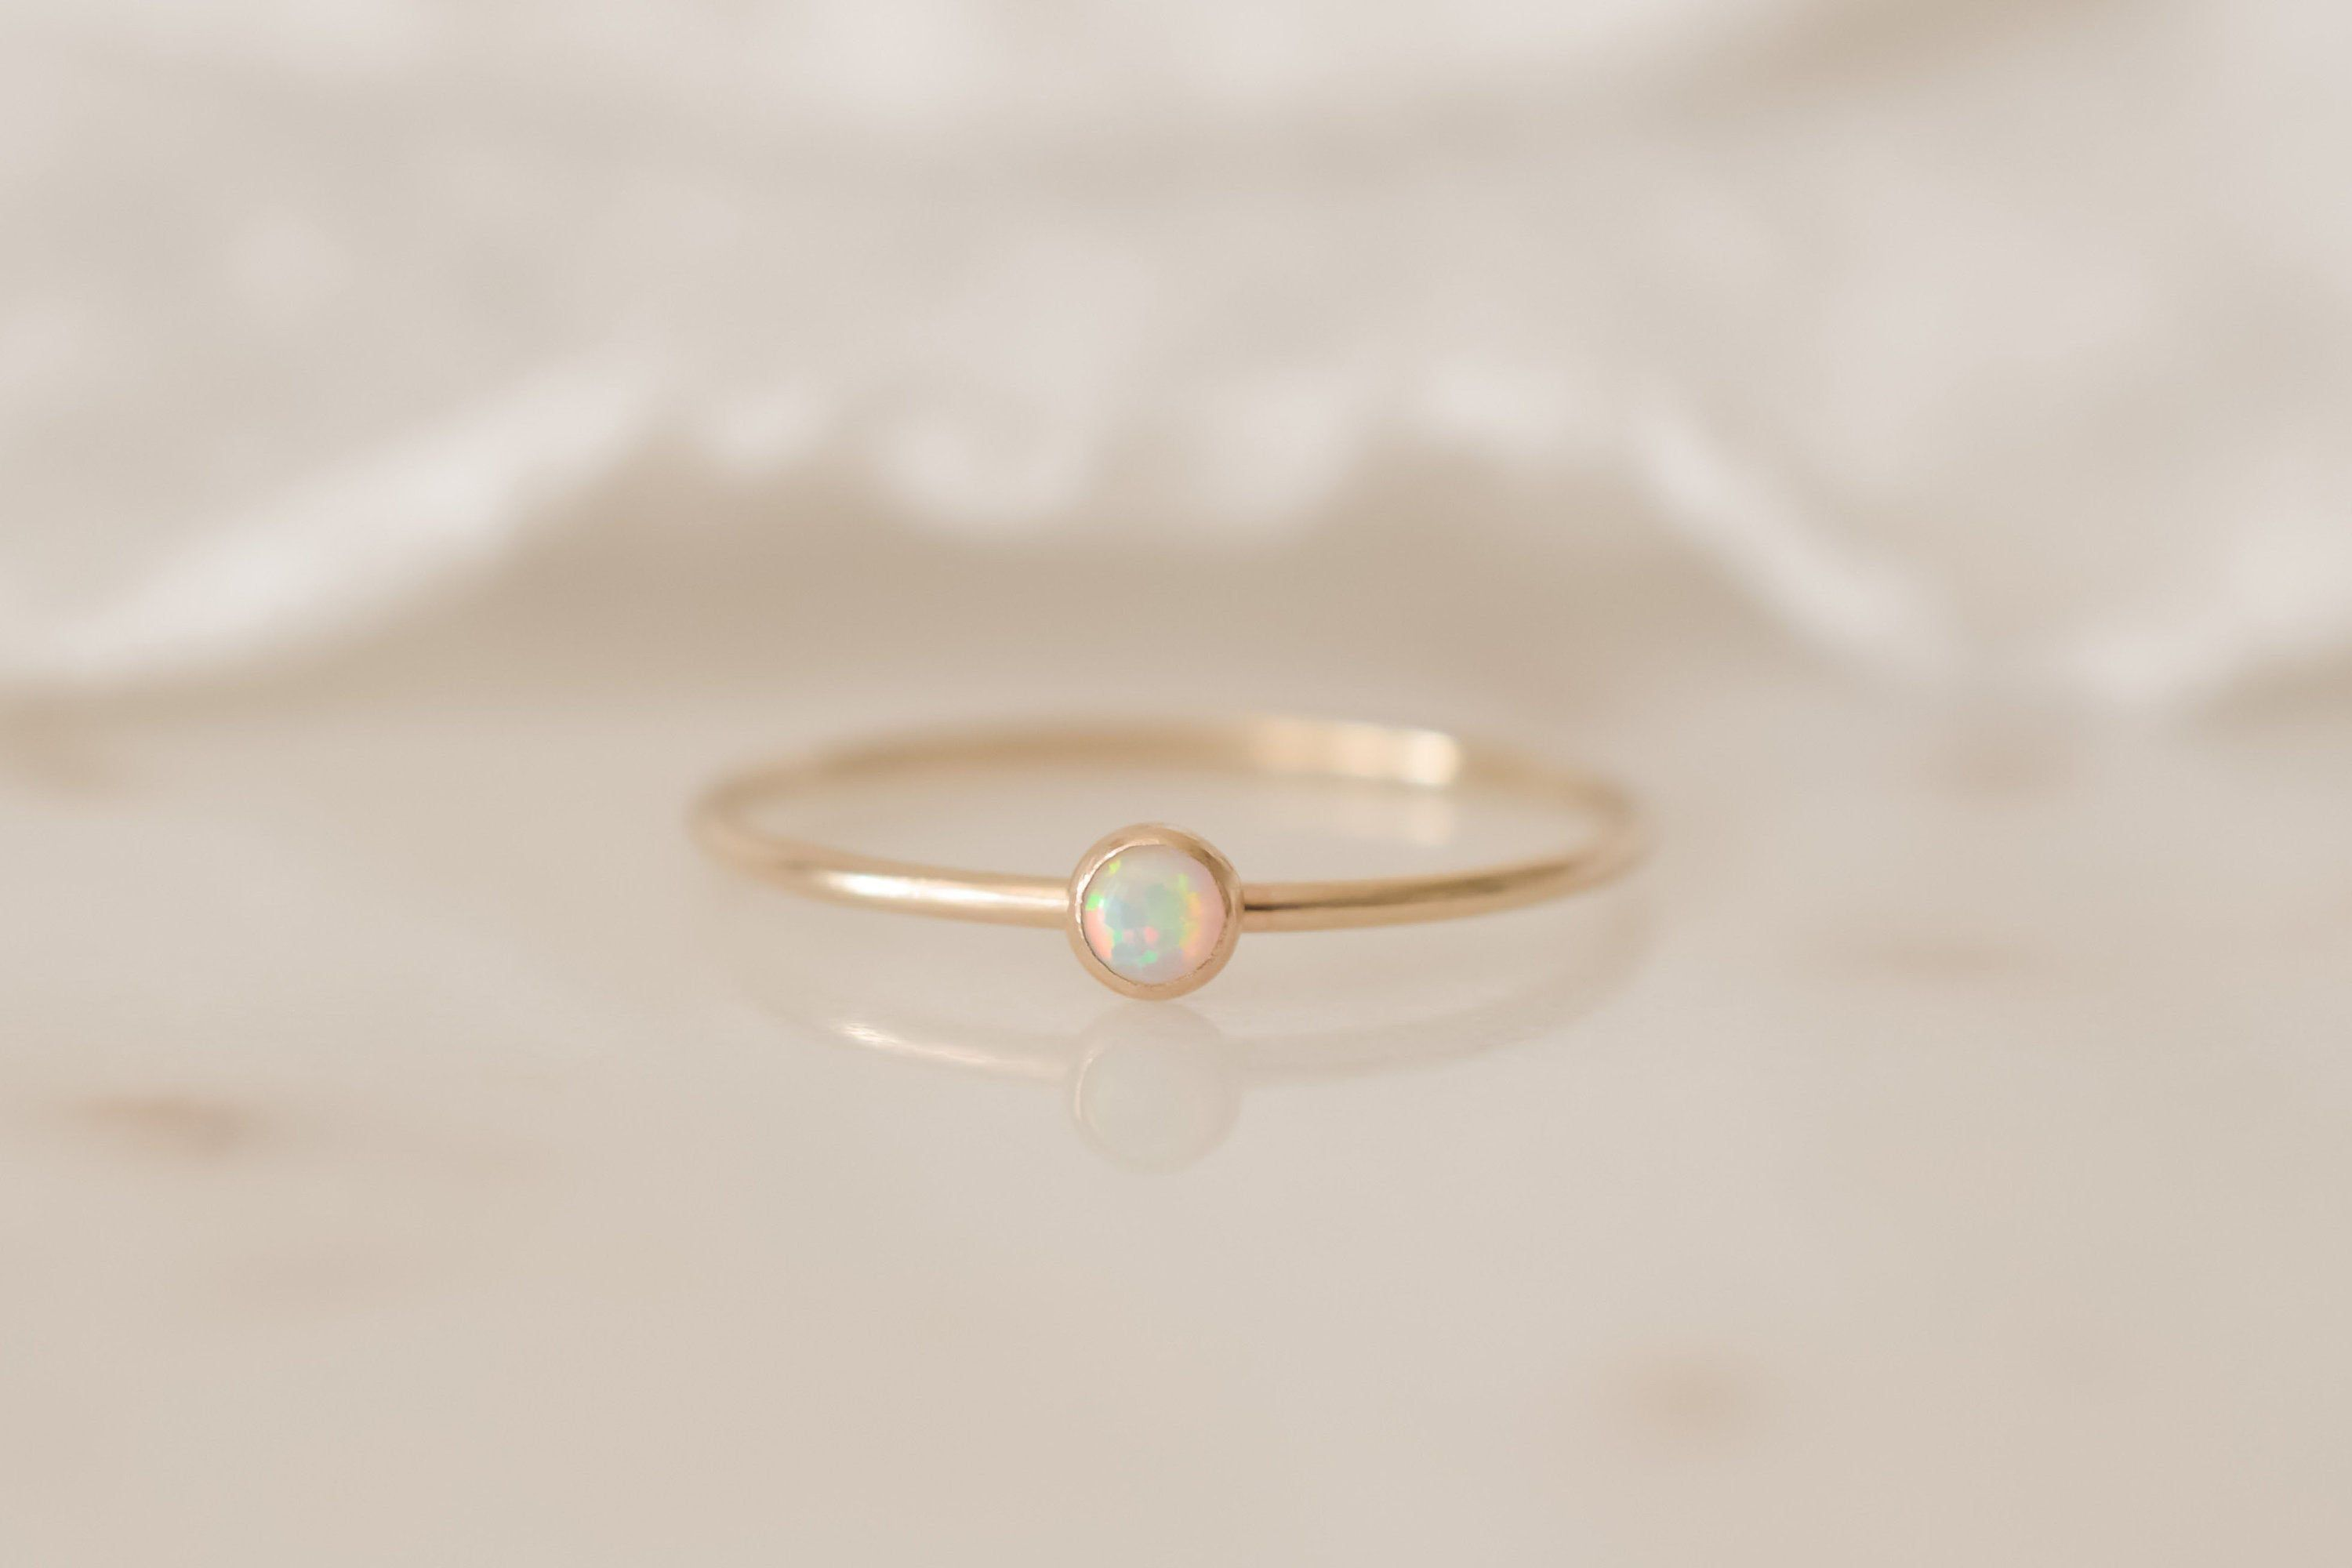 Photo of ISABEL 14k Gold Filled White Opal Stacking Ring; Made To Order; Handmade Dainty Jewelry; Gemstone Ring Stacker Made in USA Handcrafted